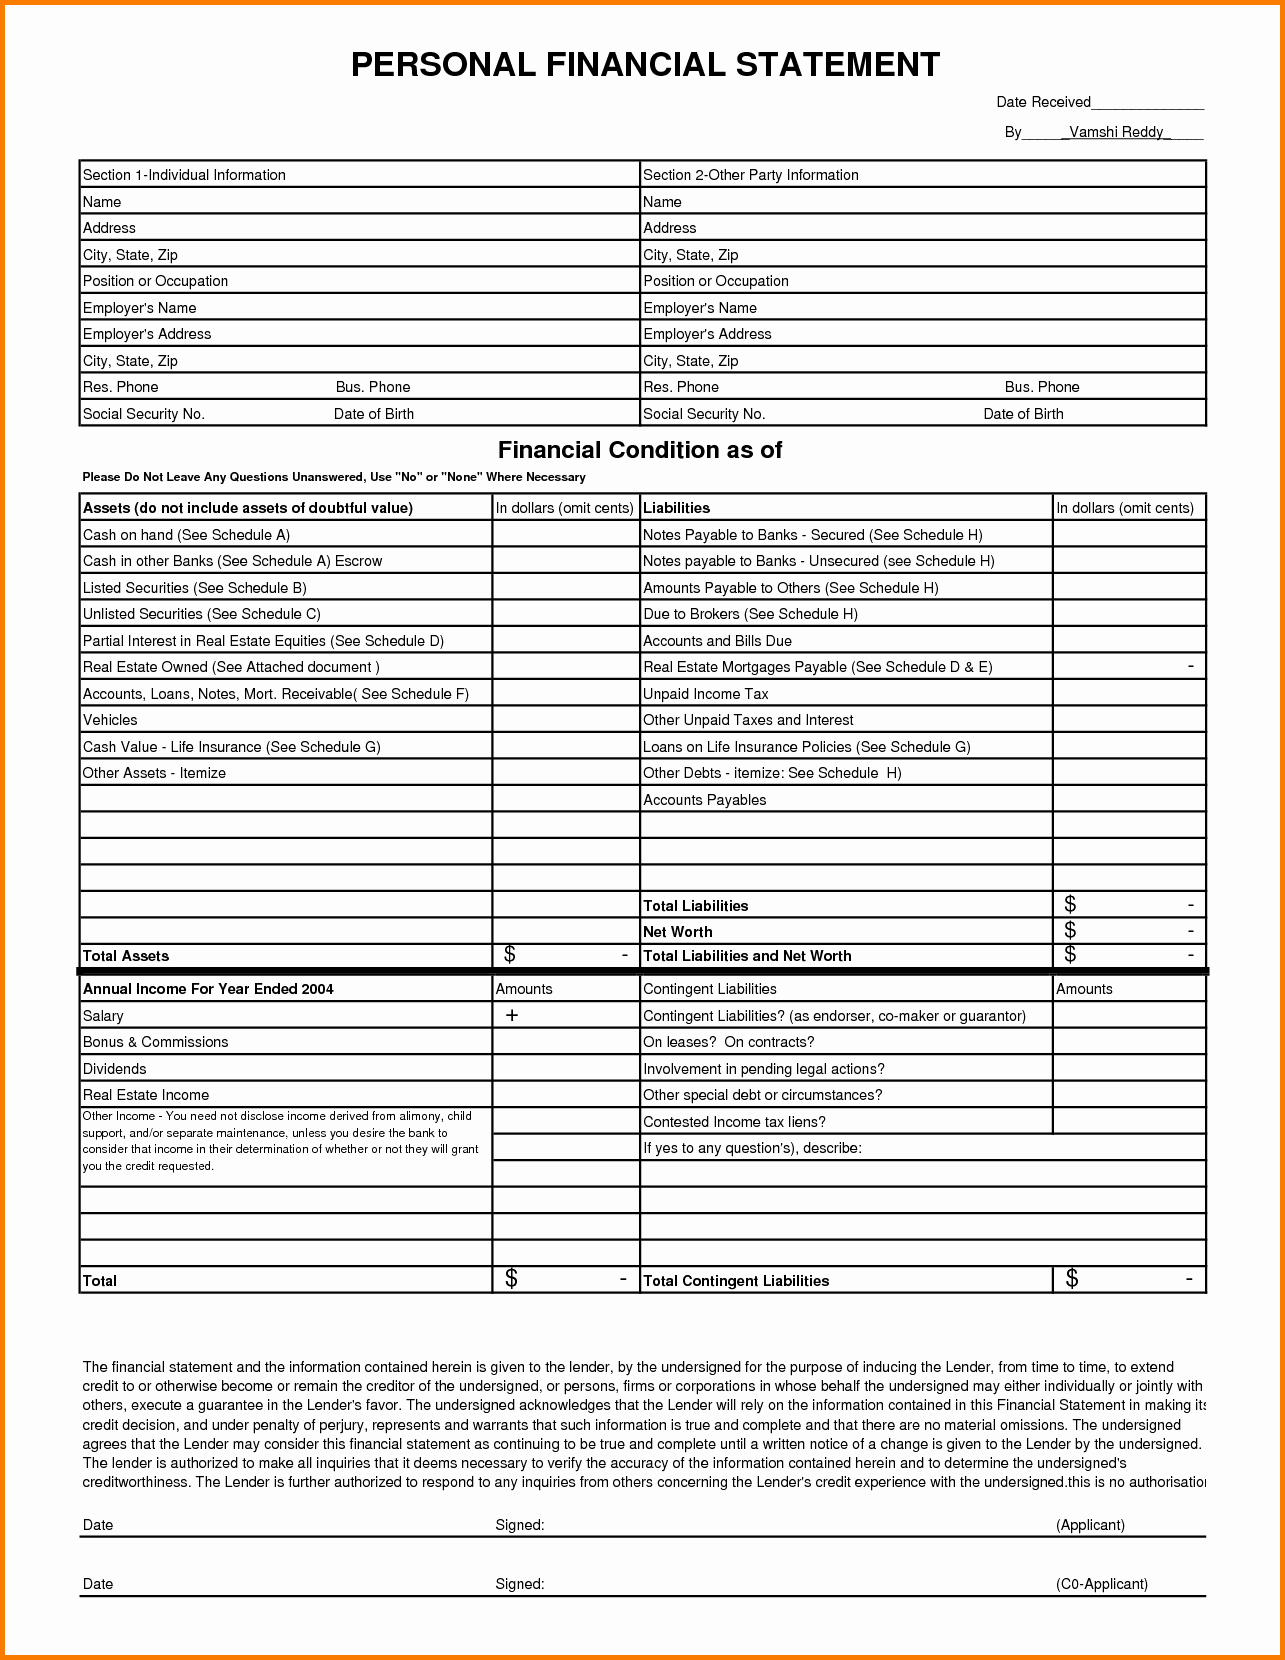 Personal Financial Statements Template Beautiful 13 Personal Financial Statement form Free